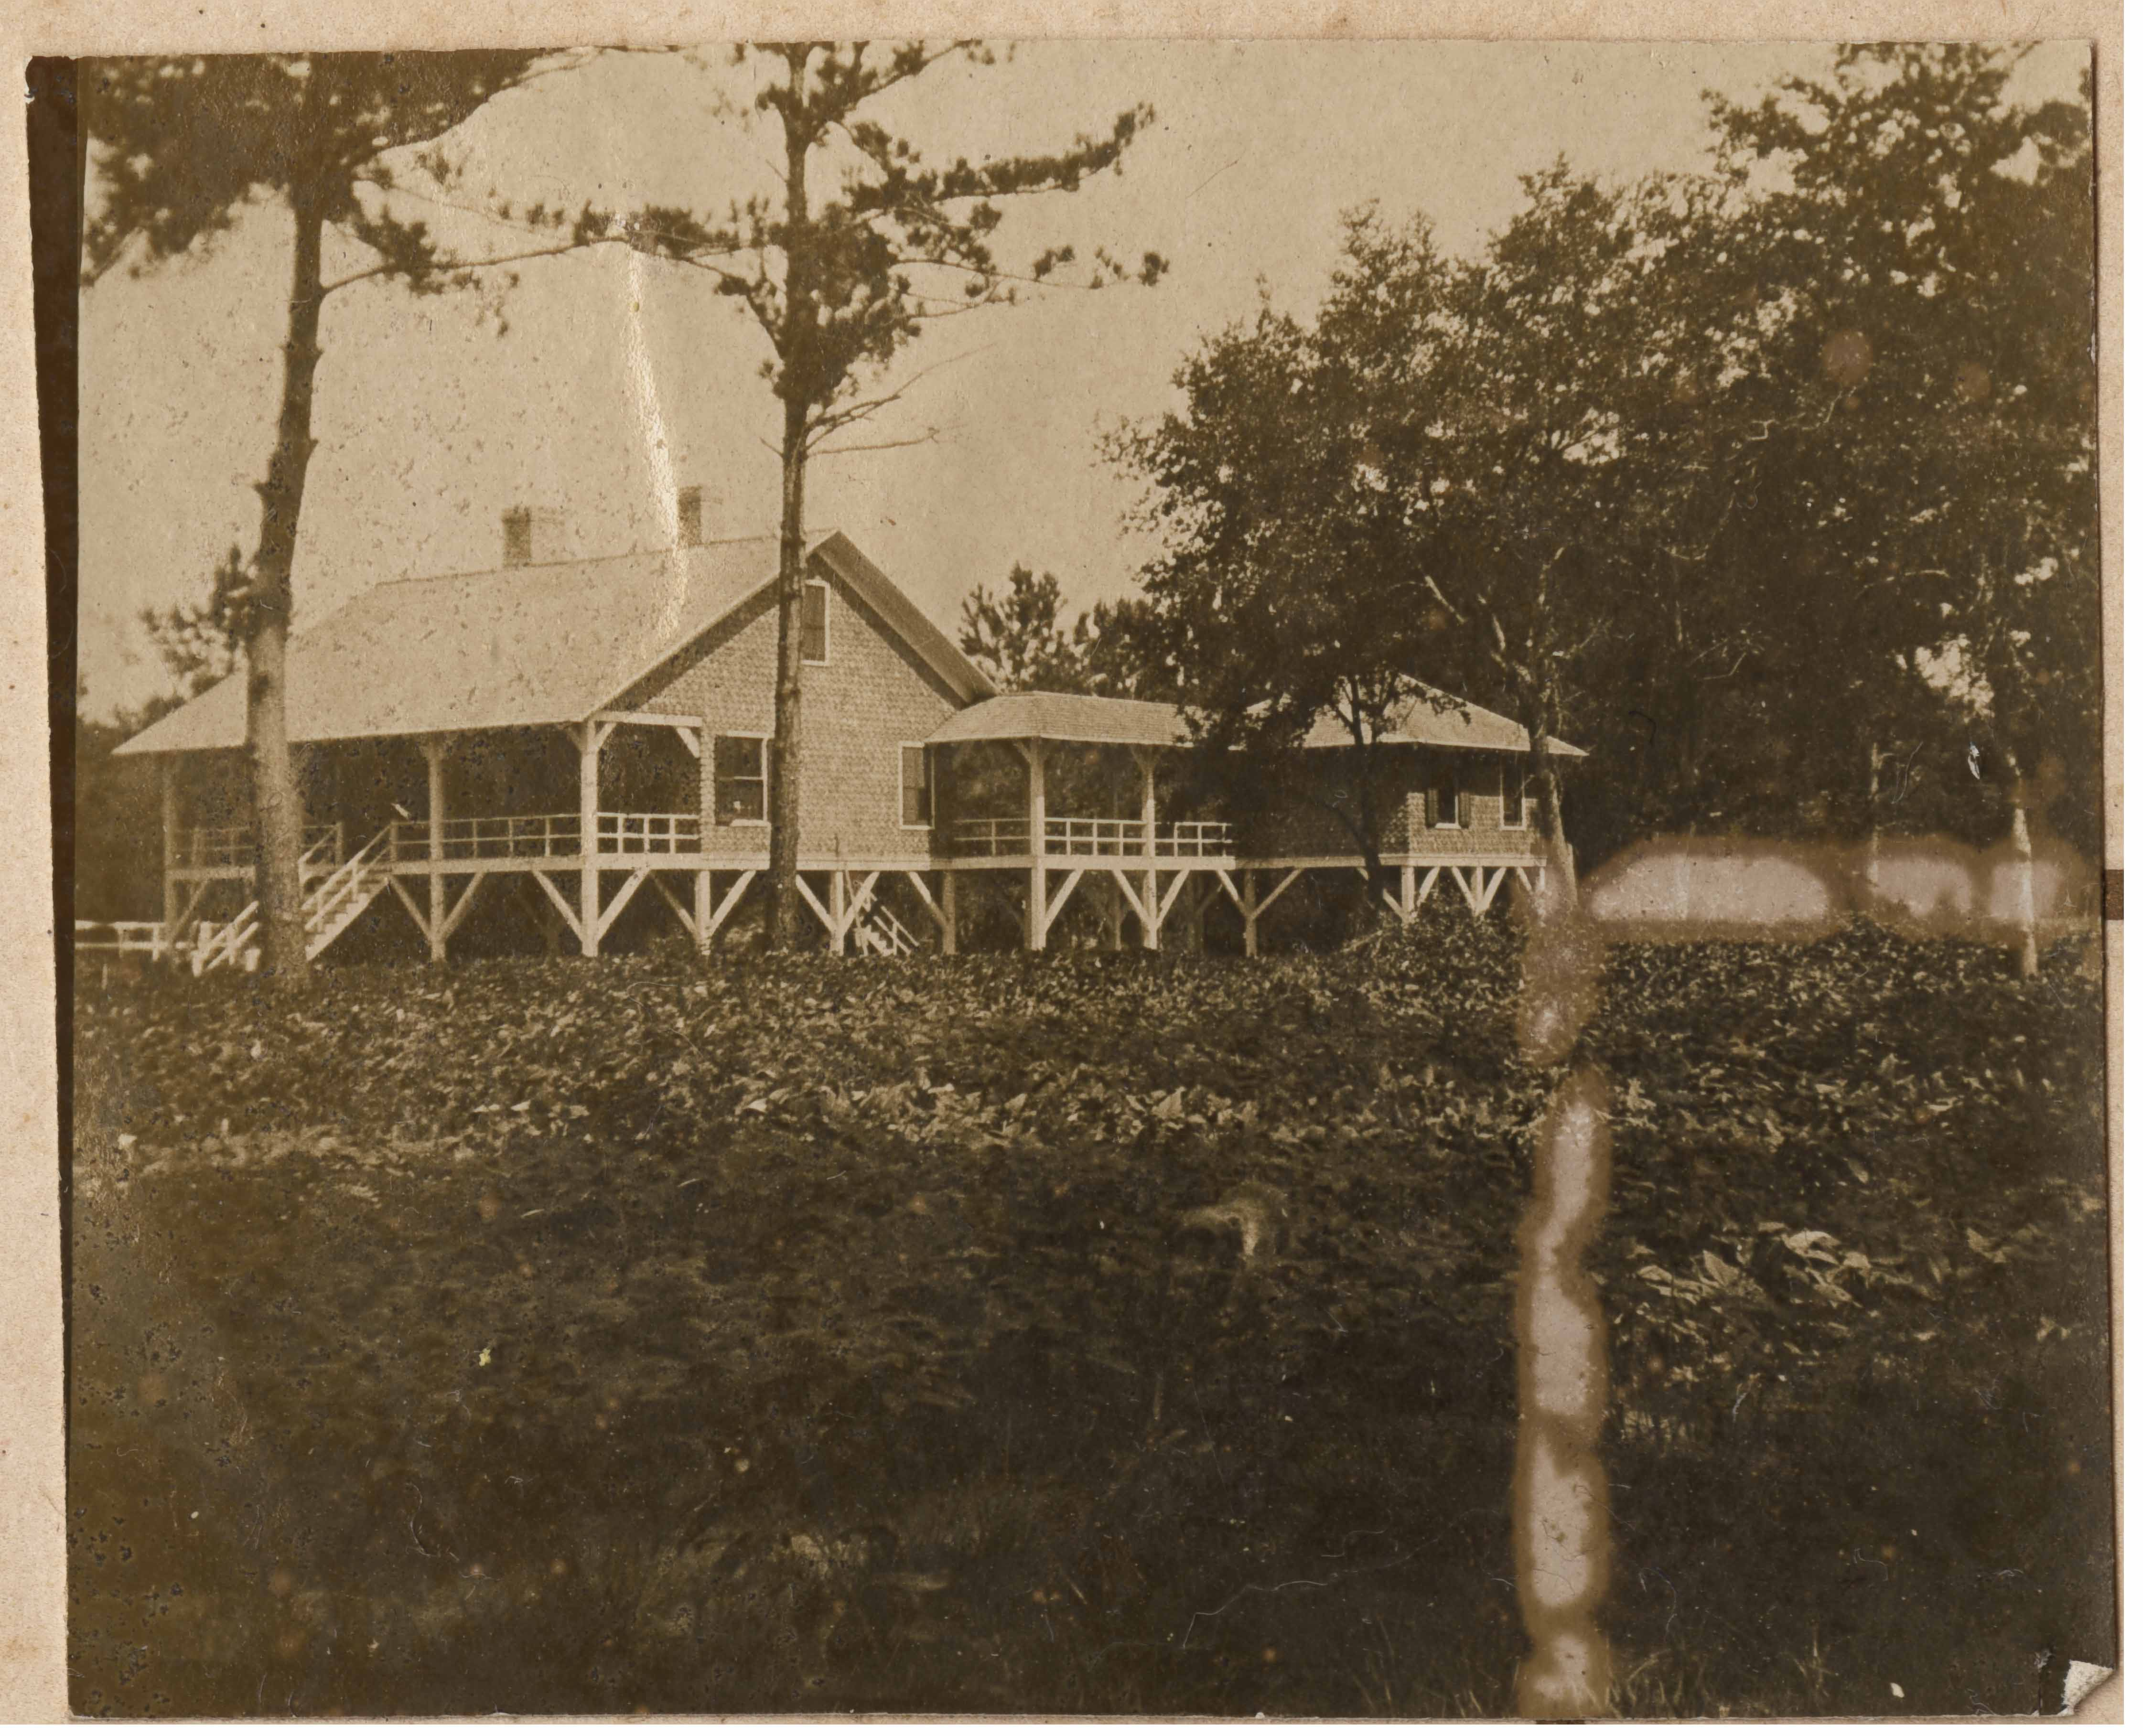 View of Main House at Halls Island from right showing right back porch